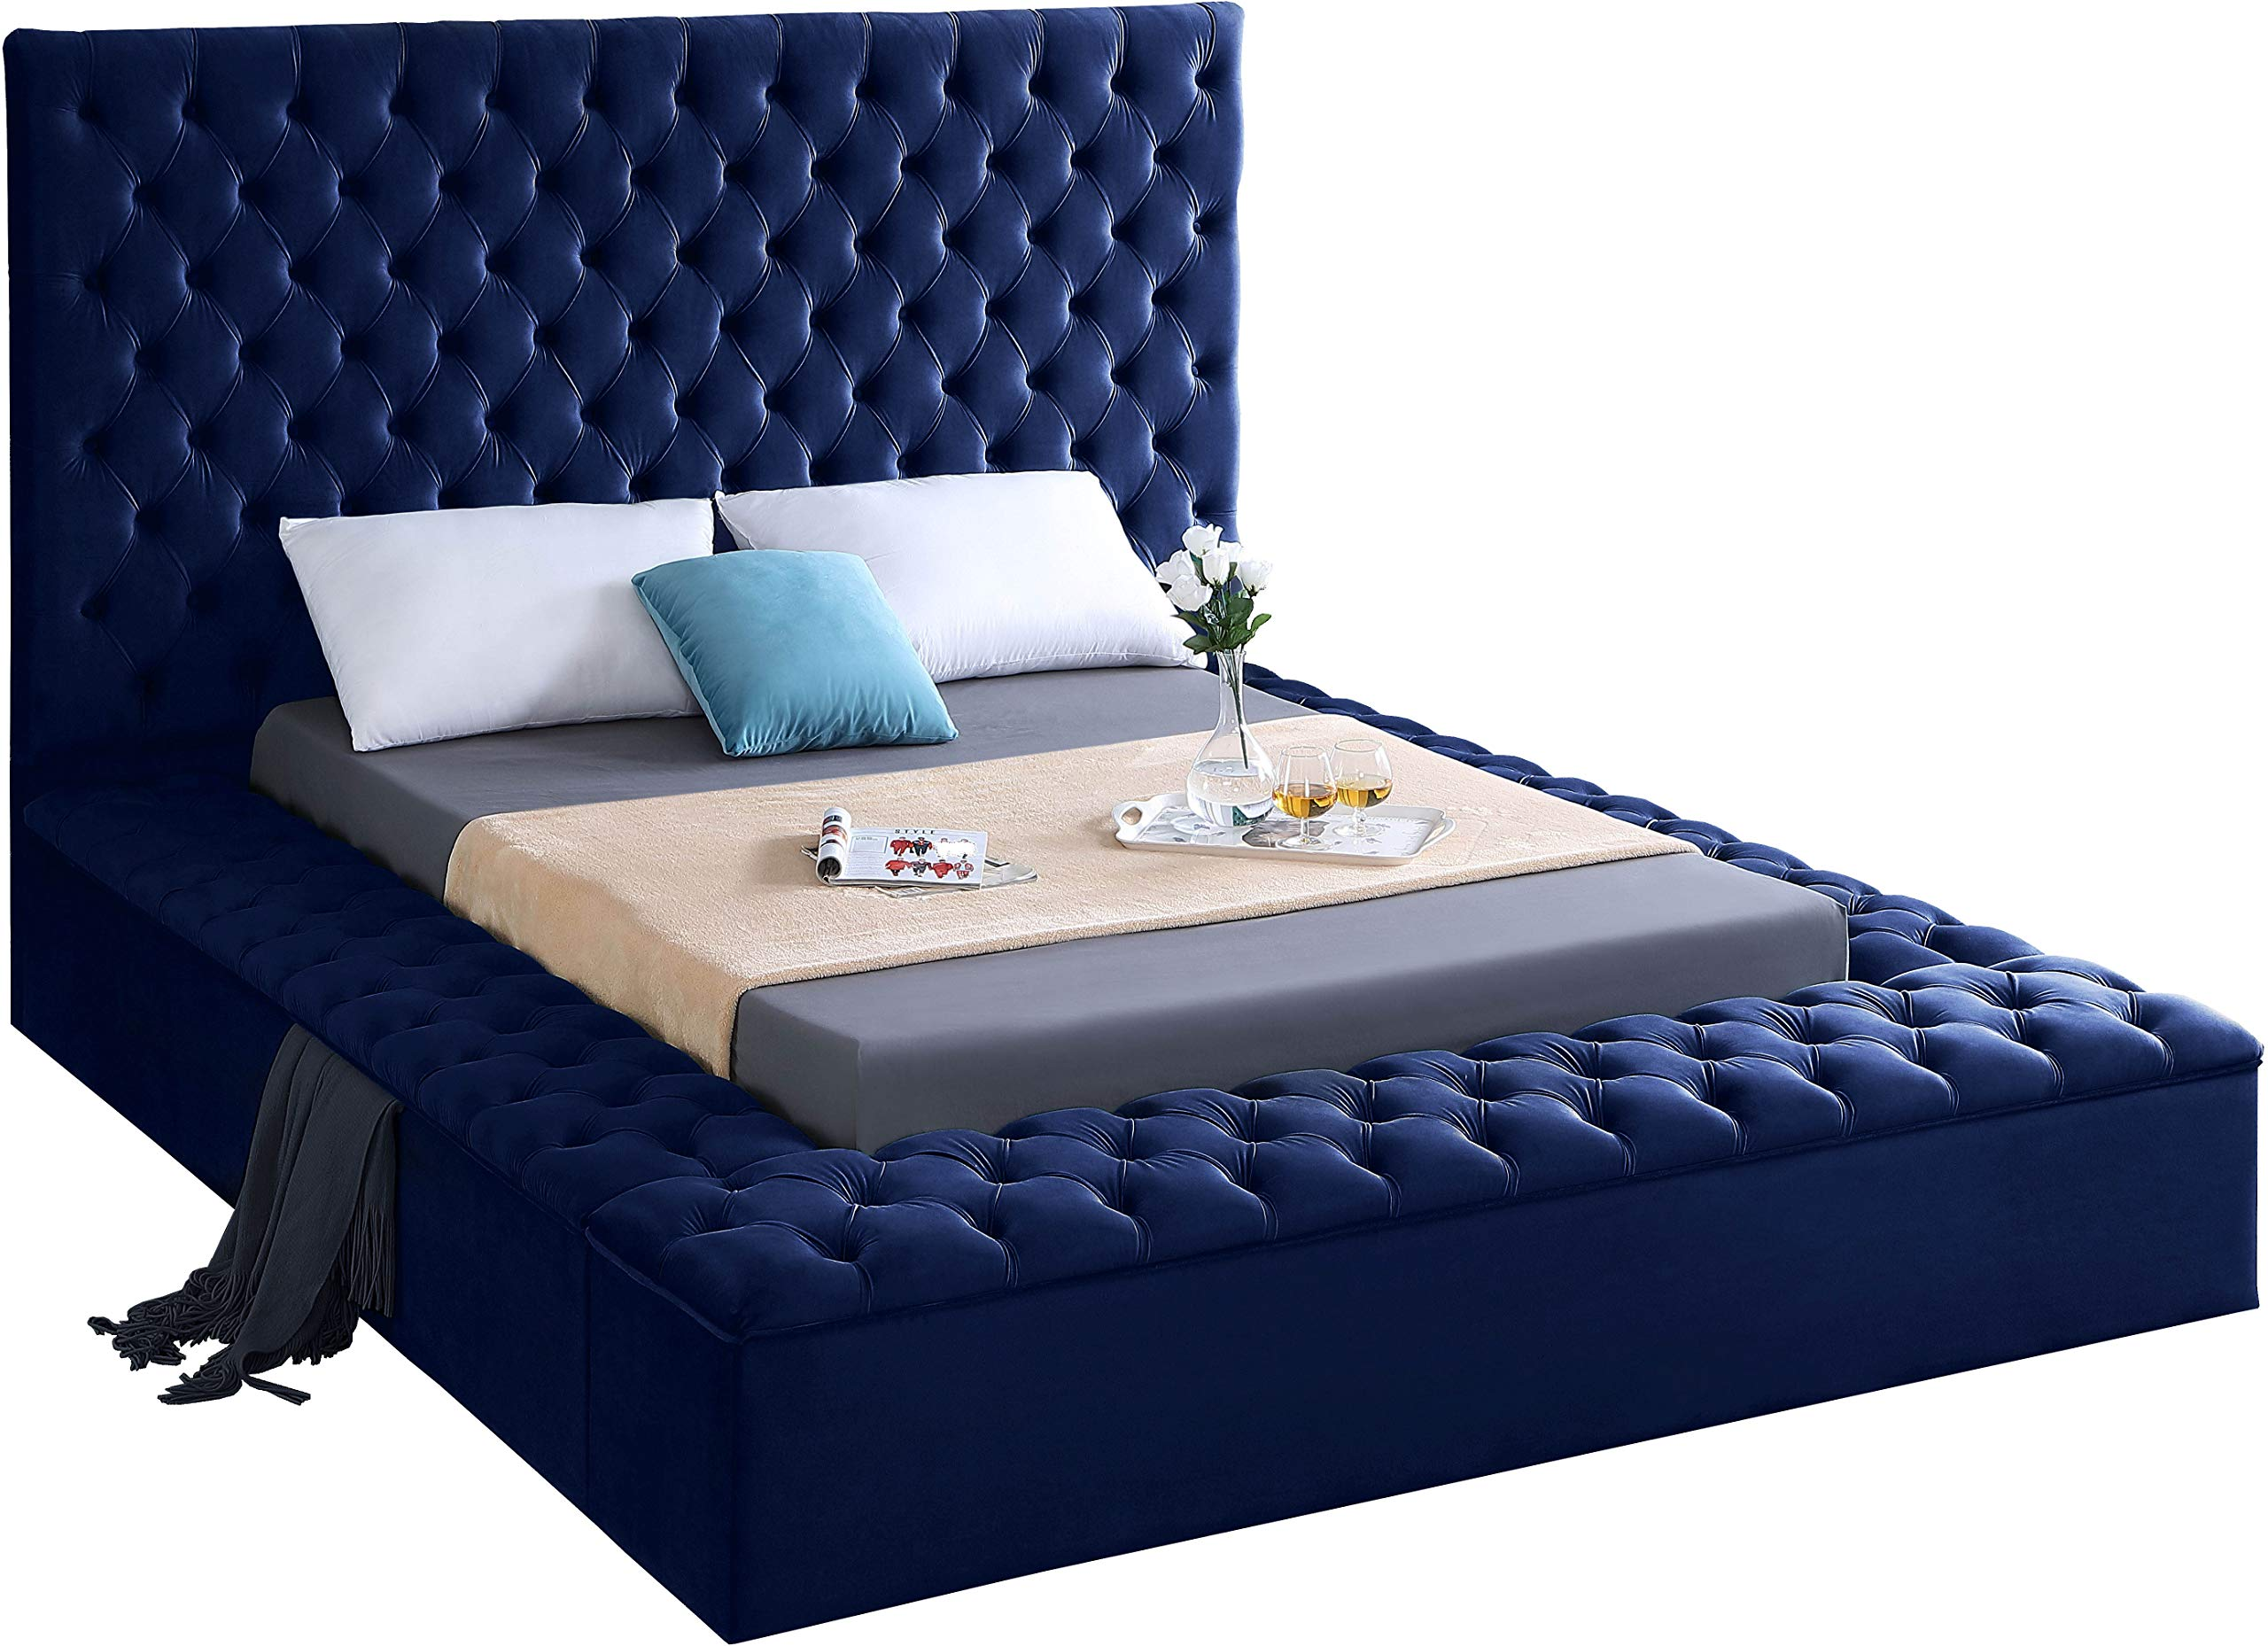 Meridian Furniture Bliss Collection Modern | Contemporary Navy Velvet Upholstered Bed with Deep Tufting, with Storage Rails and Footboard, King, by Meridian Furniture